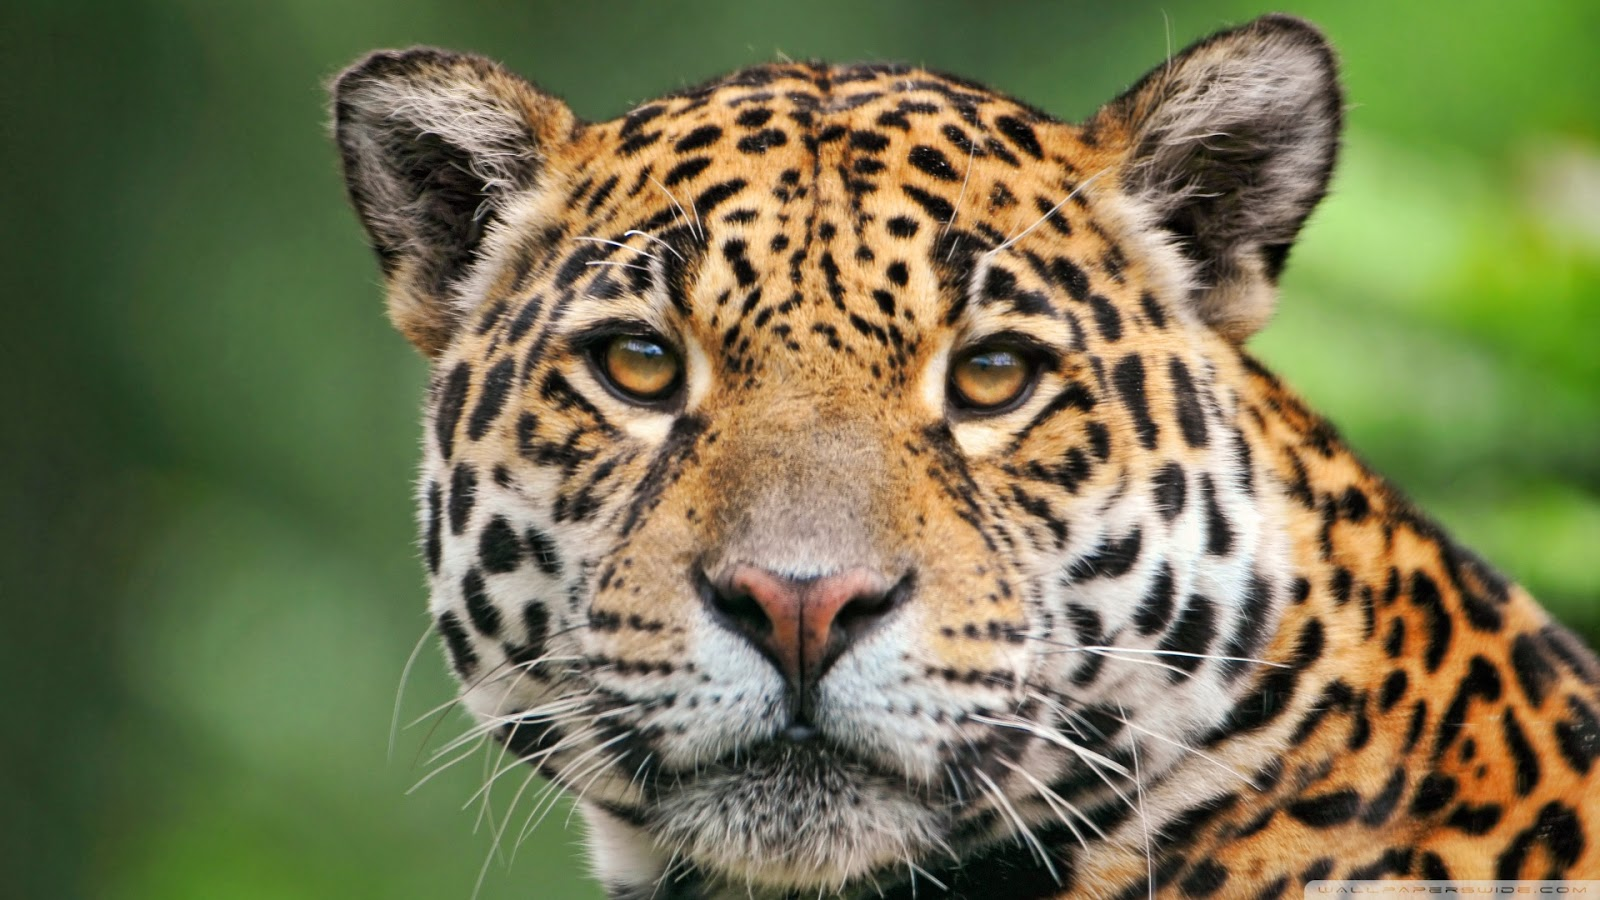 Animals Wallpaper 3d Hd 2 0 Apk Download: Free 3D Wallpapers Download: Aanimal Wallpapers, Animal Hd